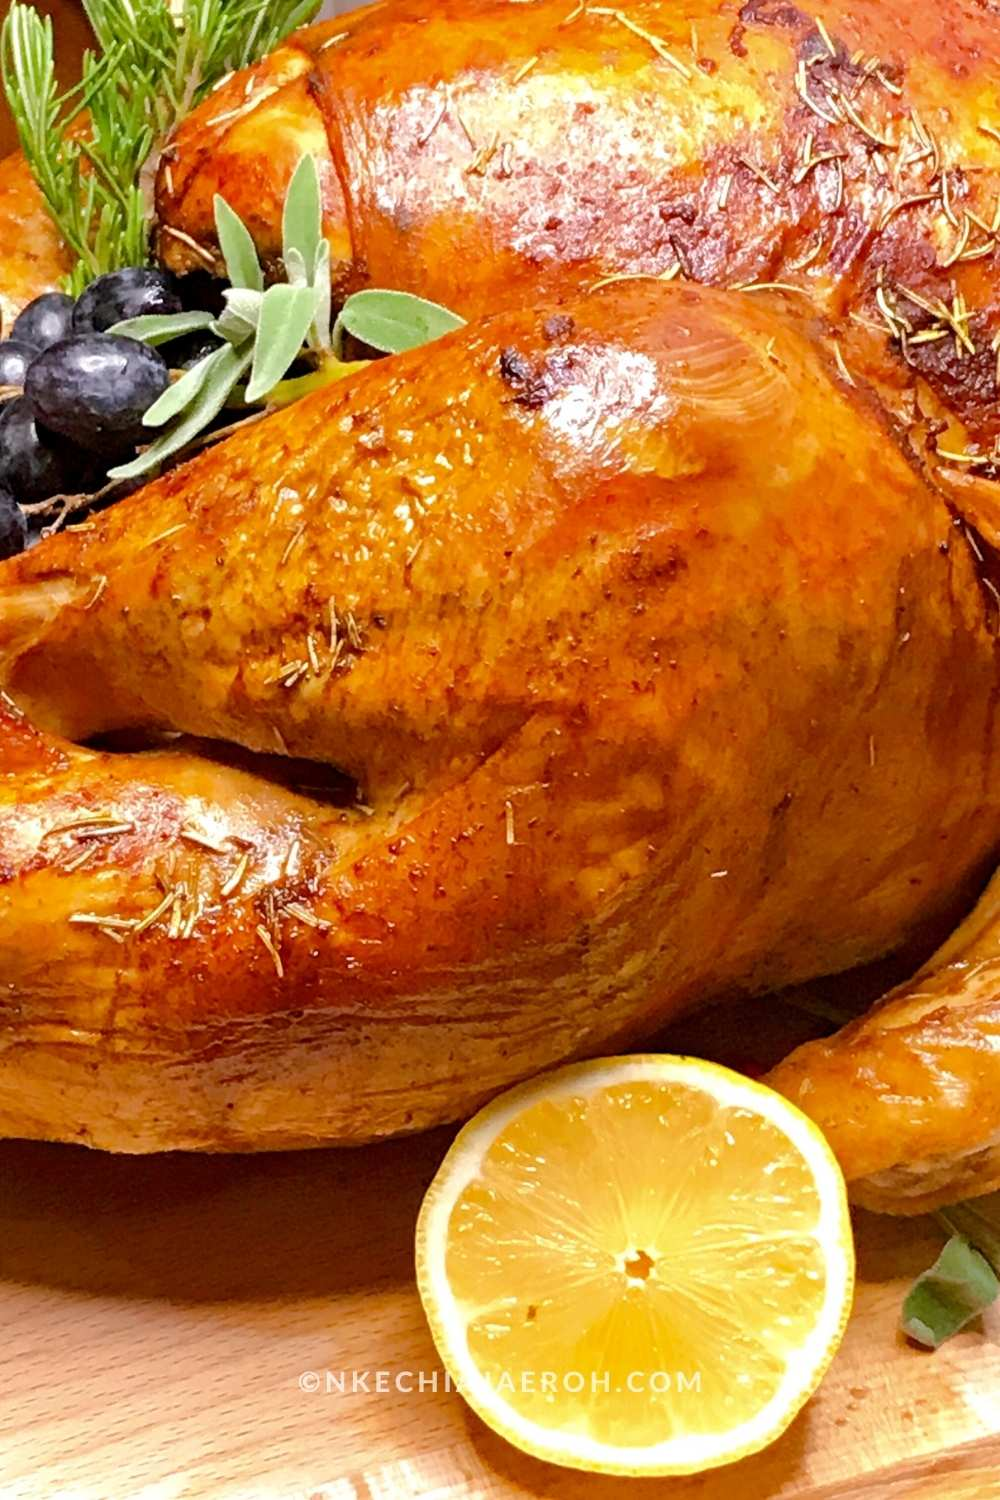 Among other dishes I make on this day, my Thanksgiving roasted turkey recipe is at the forefront. An easy and juicy oven-baked turkey recipe that any person can easily make! This recipe will guarantee you have the most succulent turkey breast, excellent turkey drumsticks, and overall best-roasted bird!